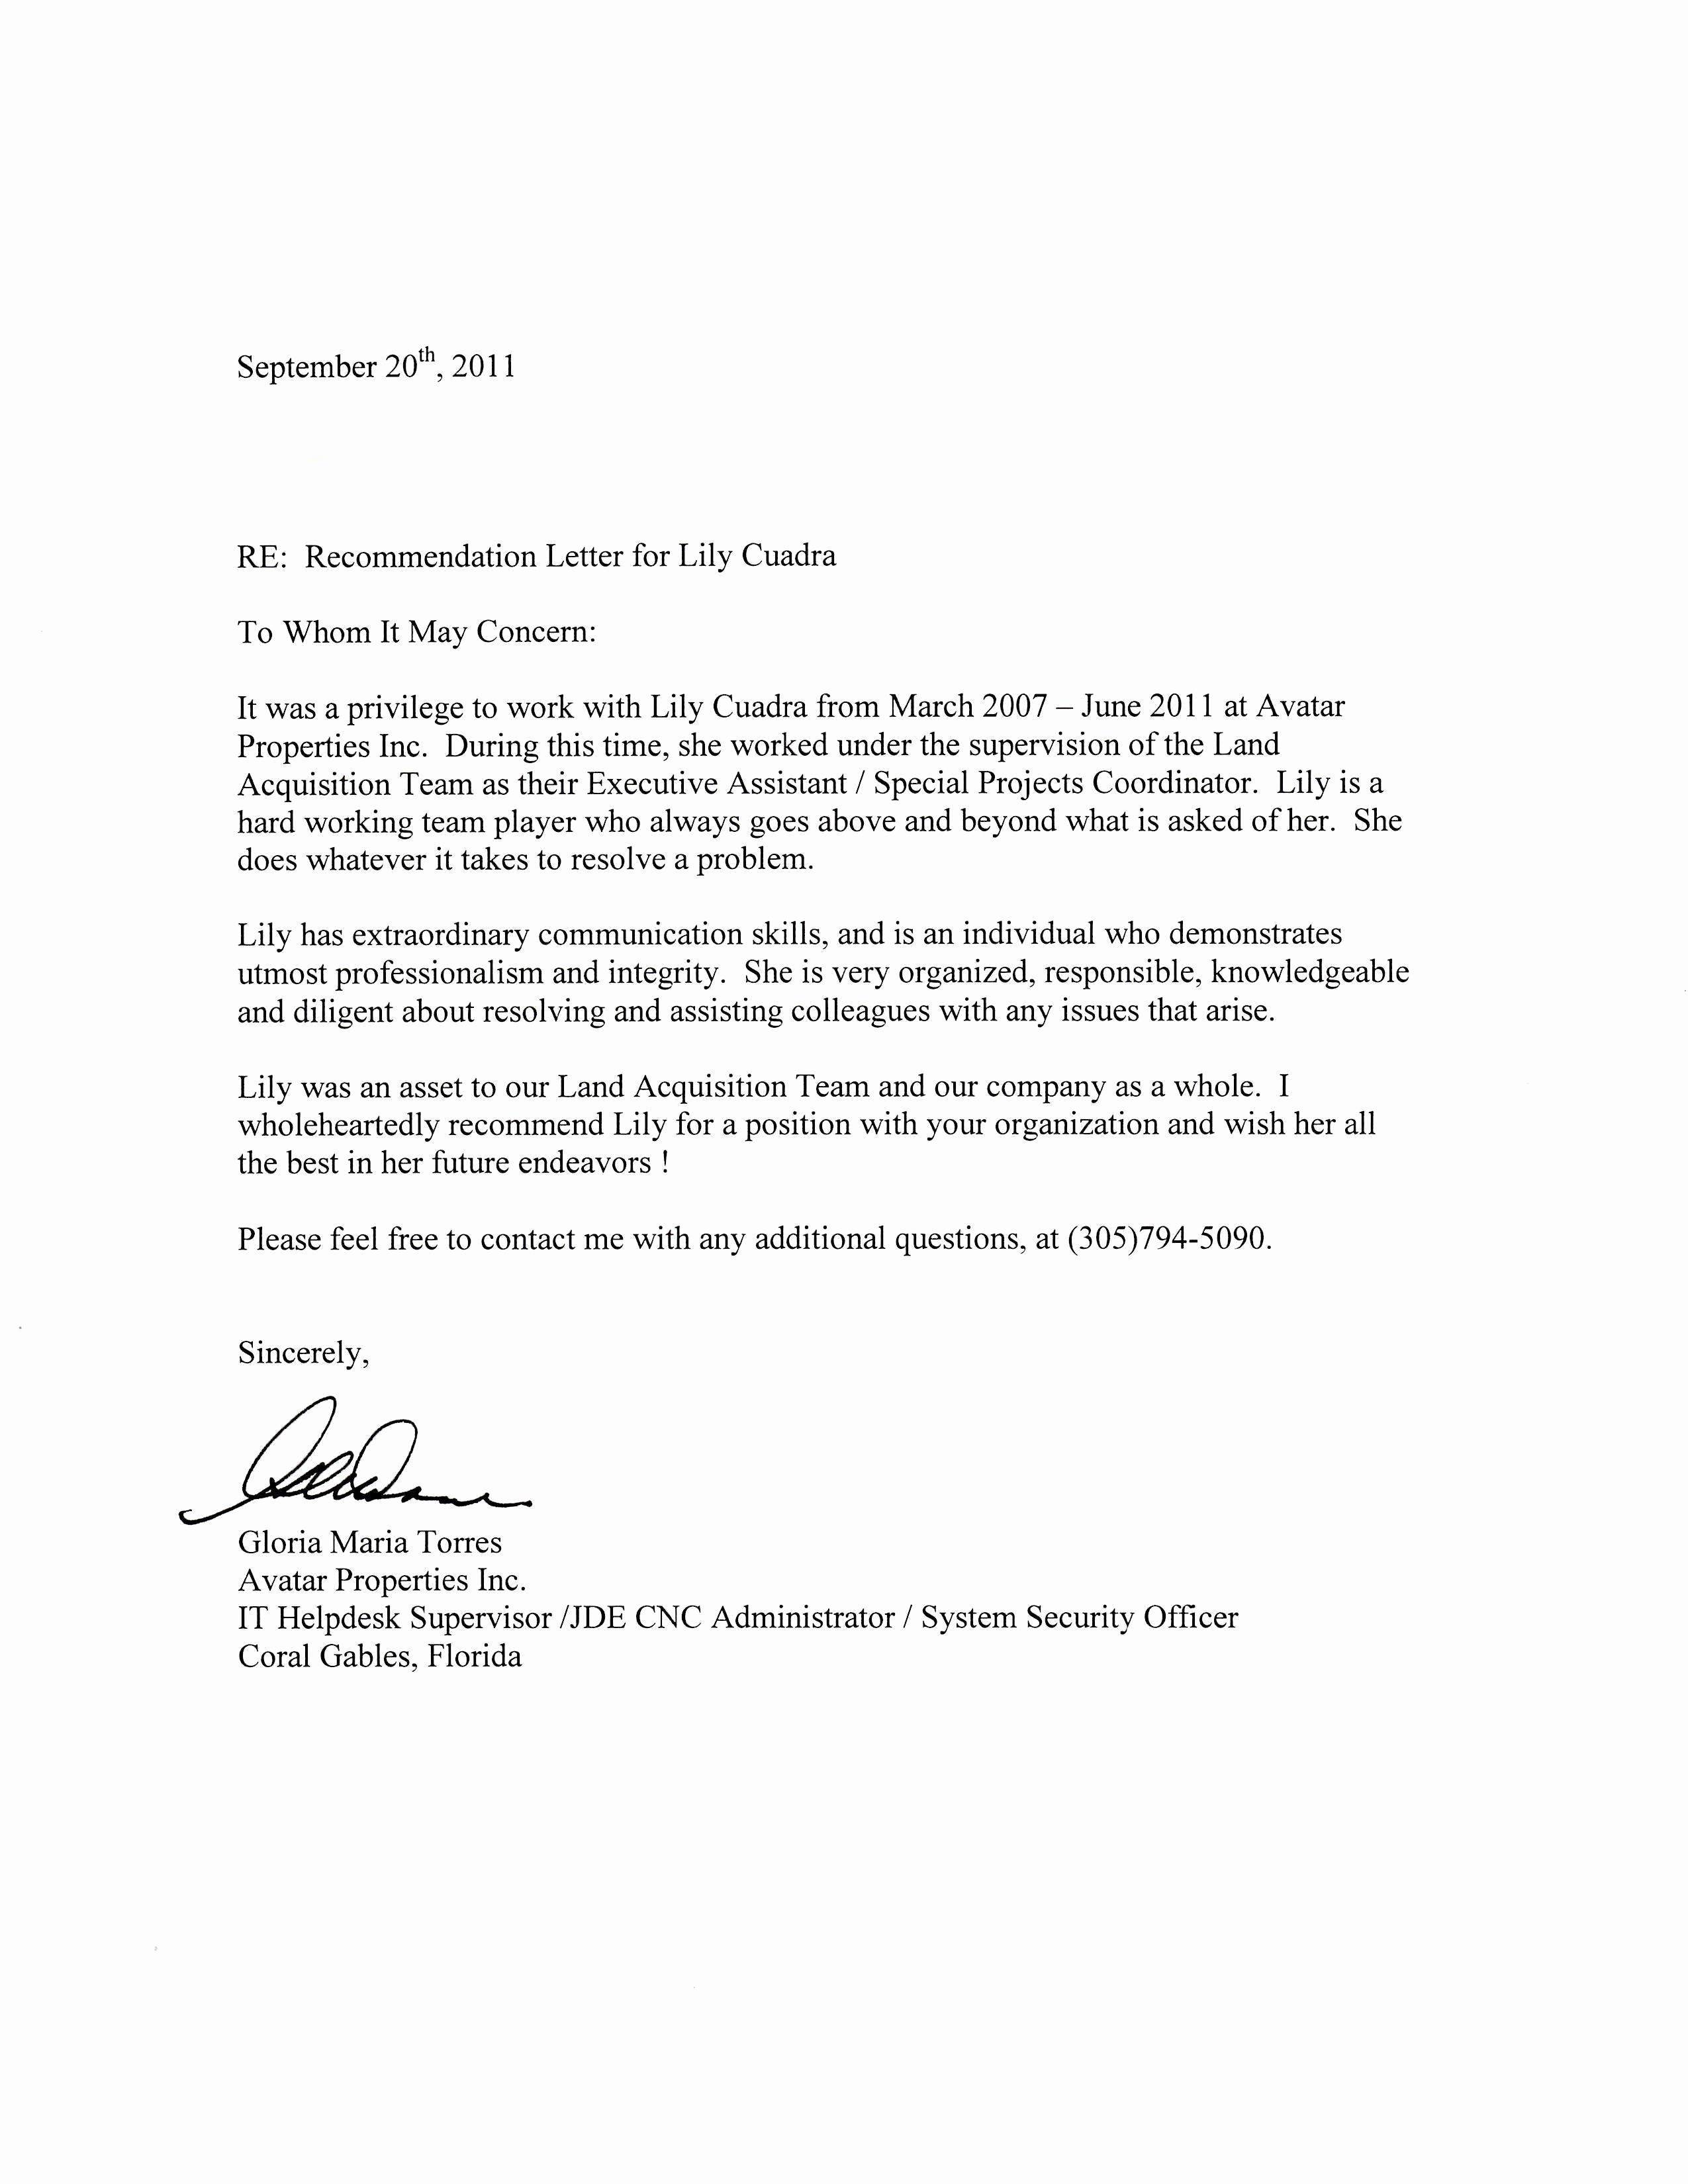 Format for Letters Of Recommendation Fresh Simple Guide Professional Reference Letter with Samples